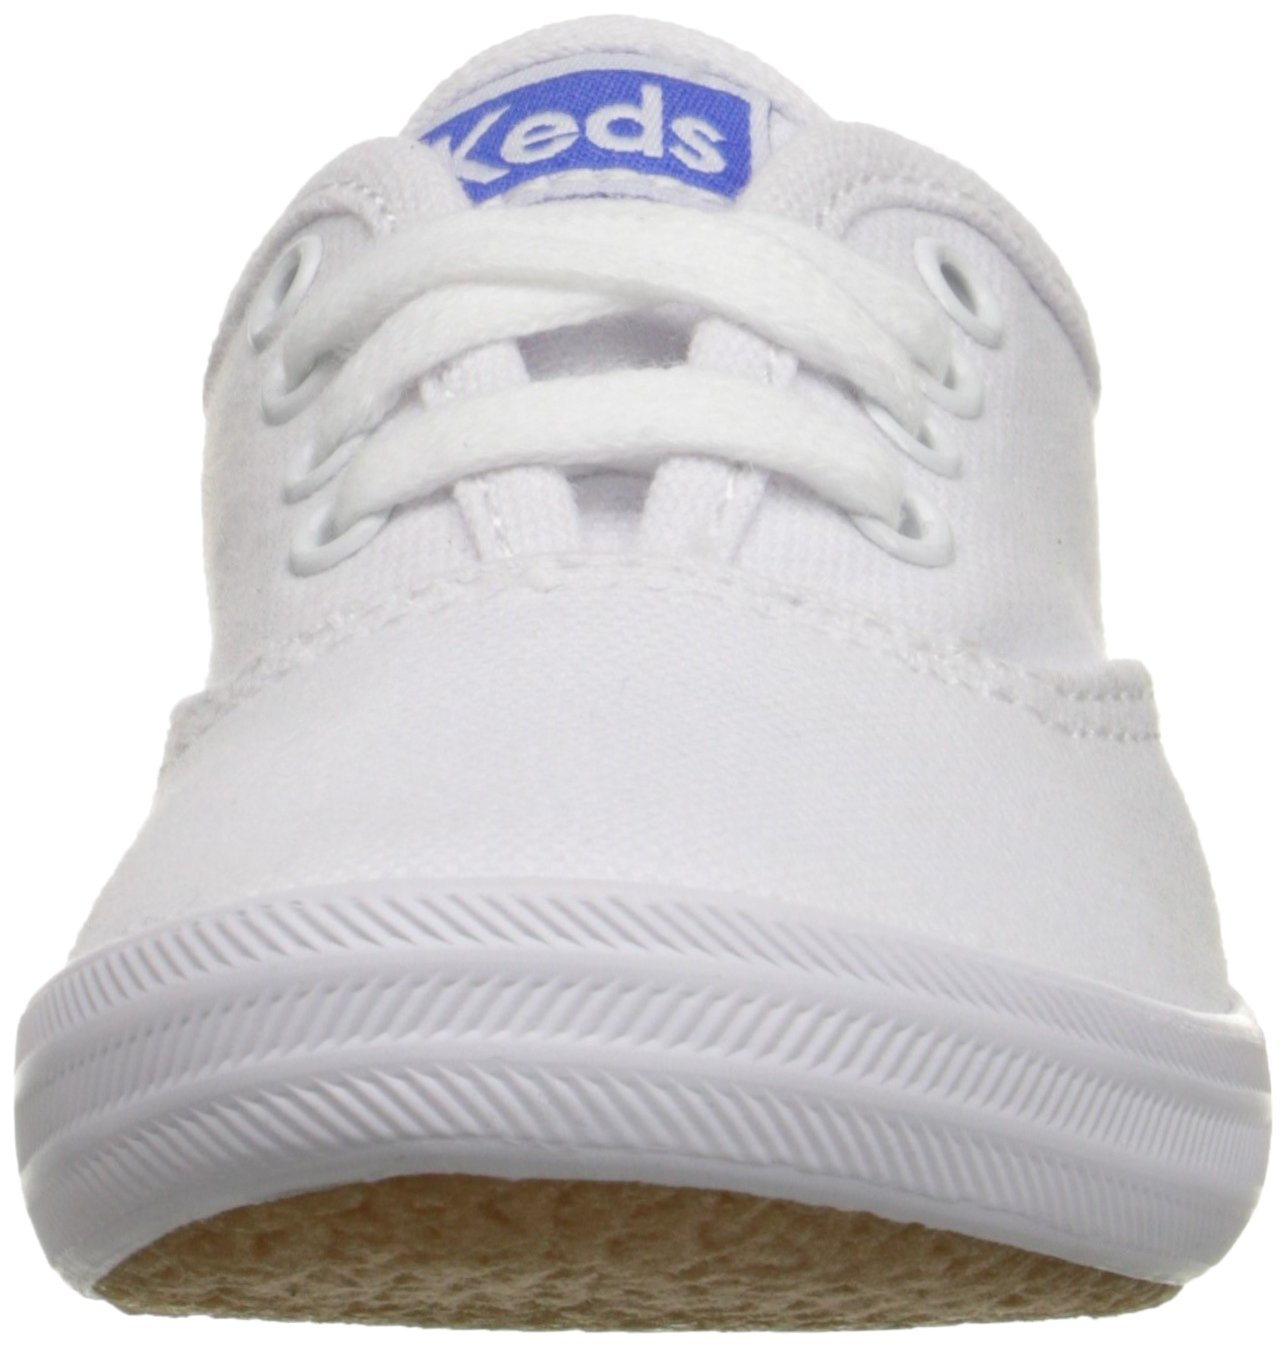 Keds girls Original Champion CVO Sneaker ,White Canvas,1 W US Little Kid by Keds (Image #4)